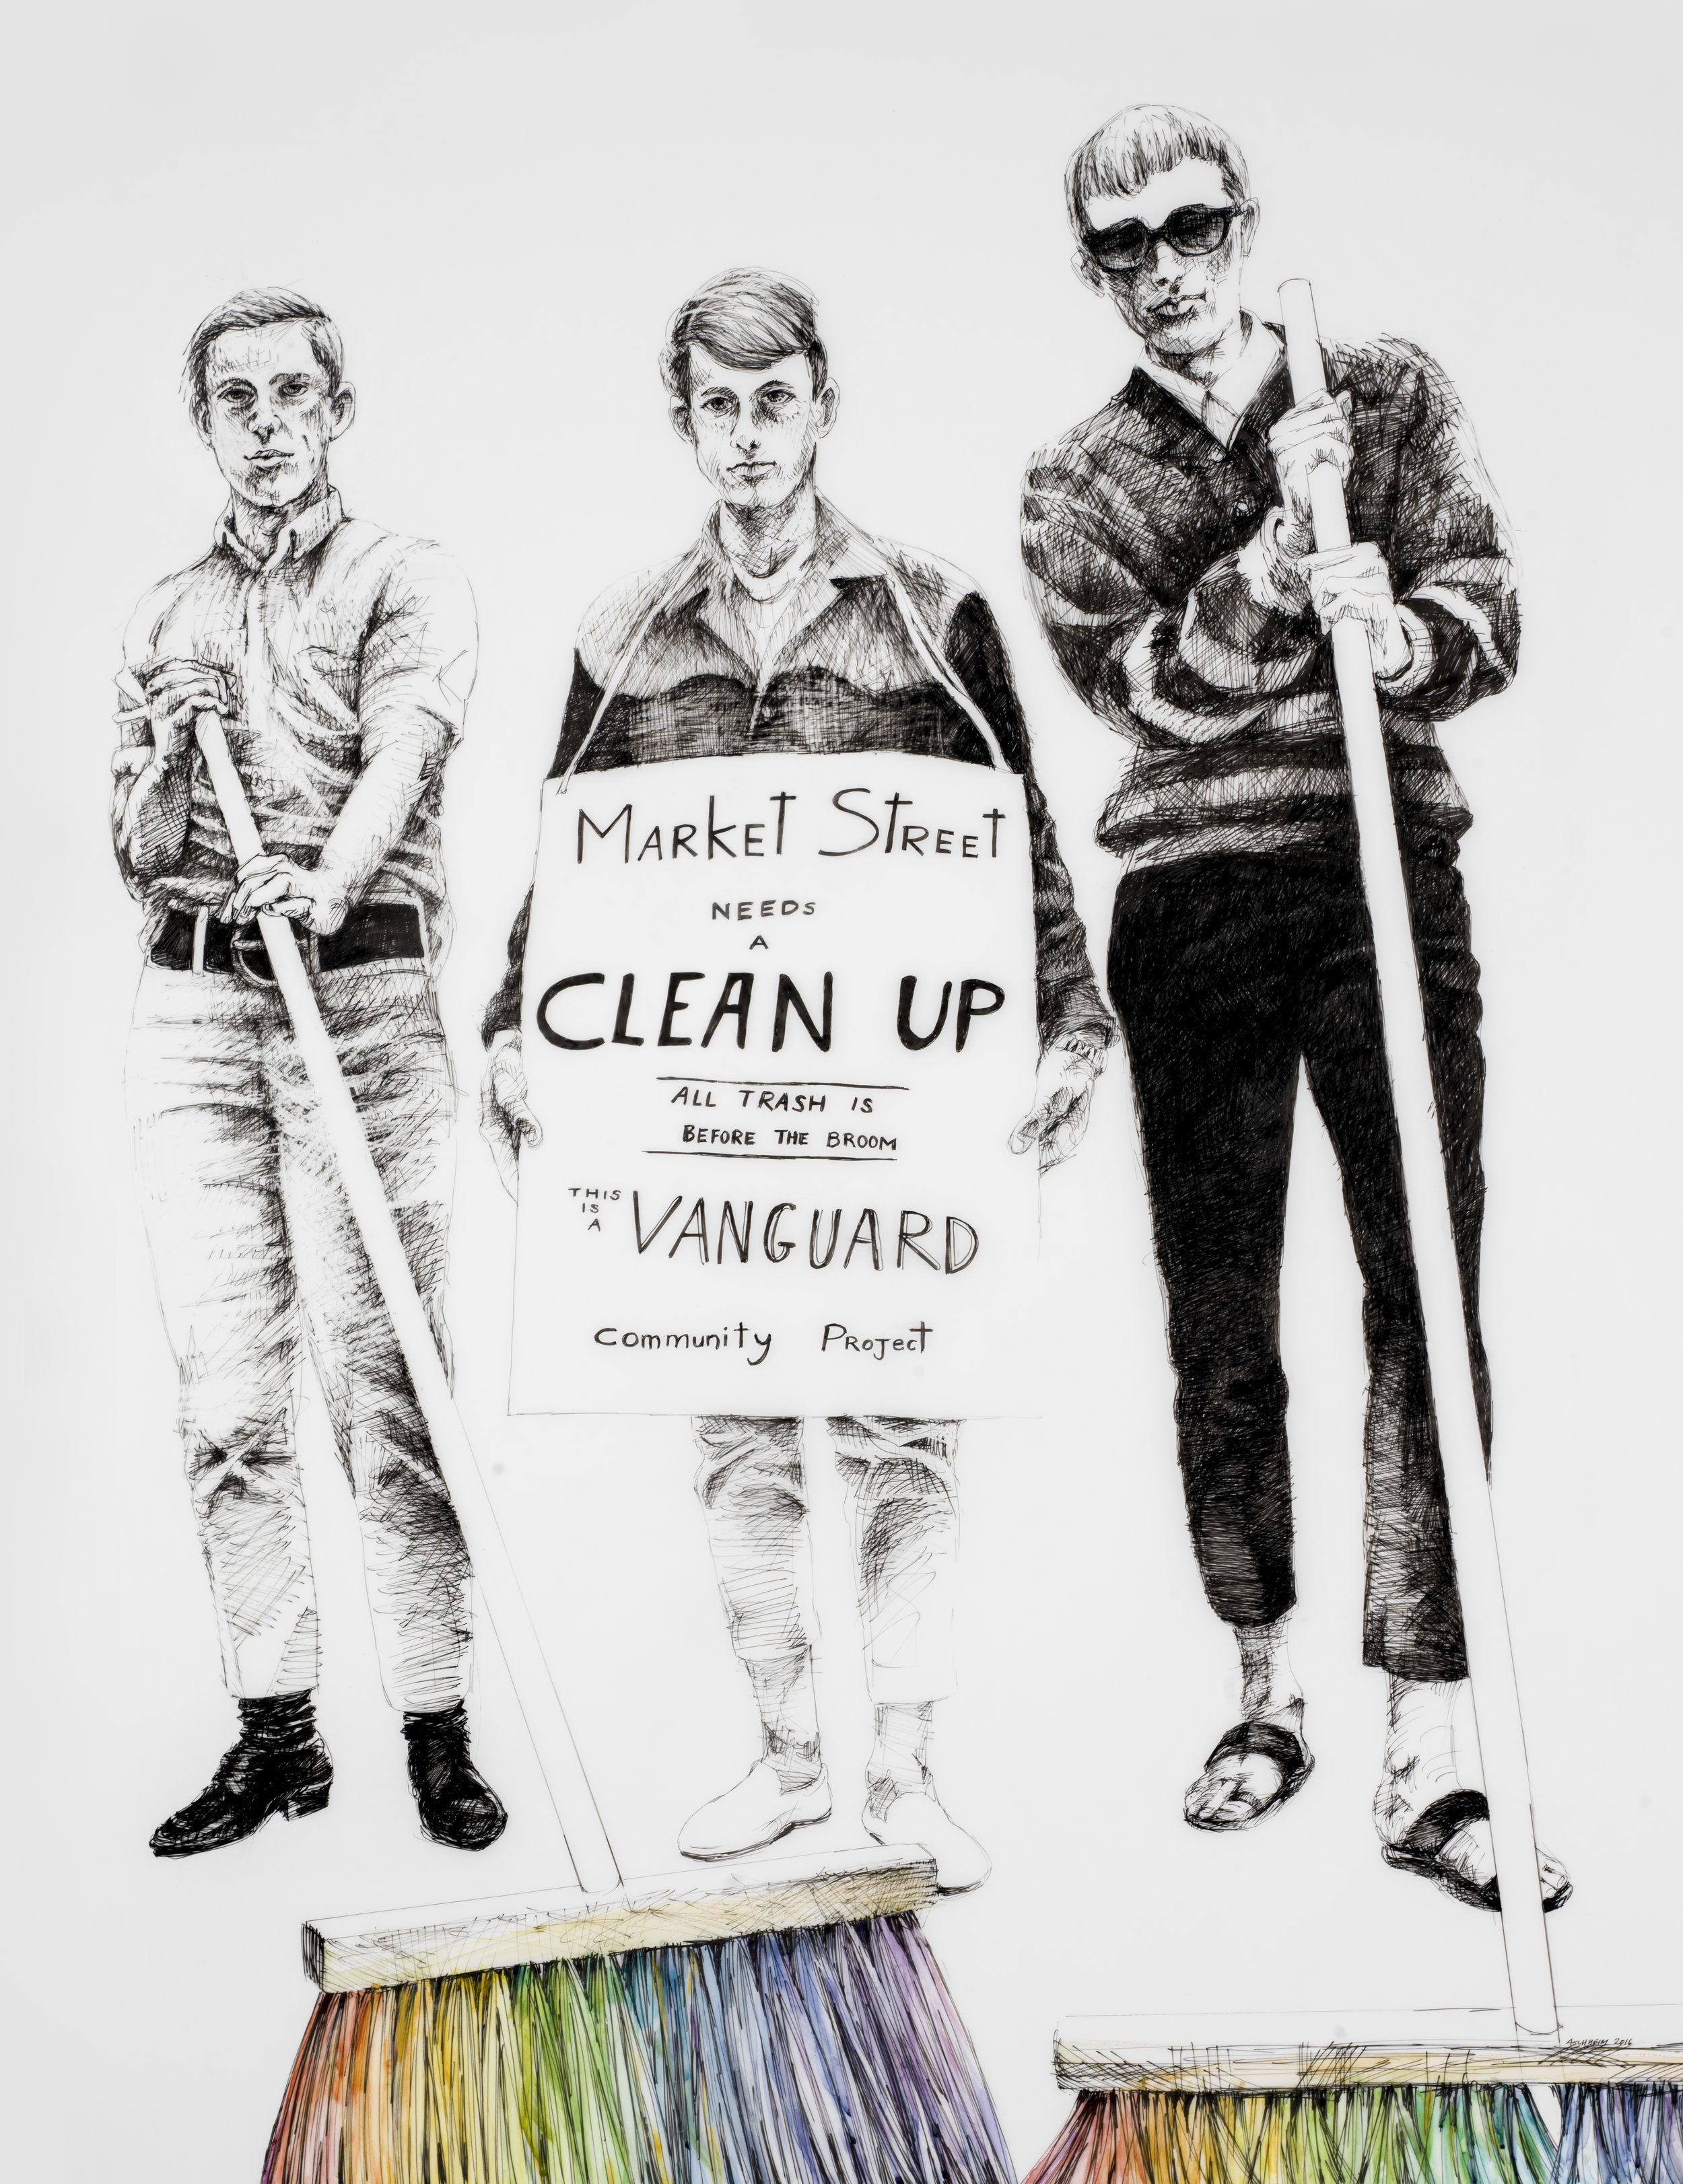 """Deborah Aschheim, Vanguard Street Sweep , 2017. Gay and transgender youth in San Francisco's Tenderloin formed Vanguard to protest discrimination and to support an emerging LGBT community. Vanguard's 1966 cleanup of Market Street made tongue-in-cheek reference to """"street sweeps"""" of homeless youth by police. """"People were beaten down by their environment, by being called names, by being told they were worthless, by families that threw them out. I started Vanguard as an opportunity where people could stand their ground.""""- Vanguard Co-Founder Adrian Ravarour.Image courtesy the artist and the San Francisco Arts Commission's Art on Market Street Program."""